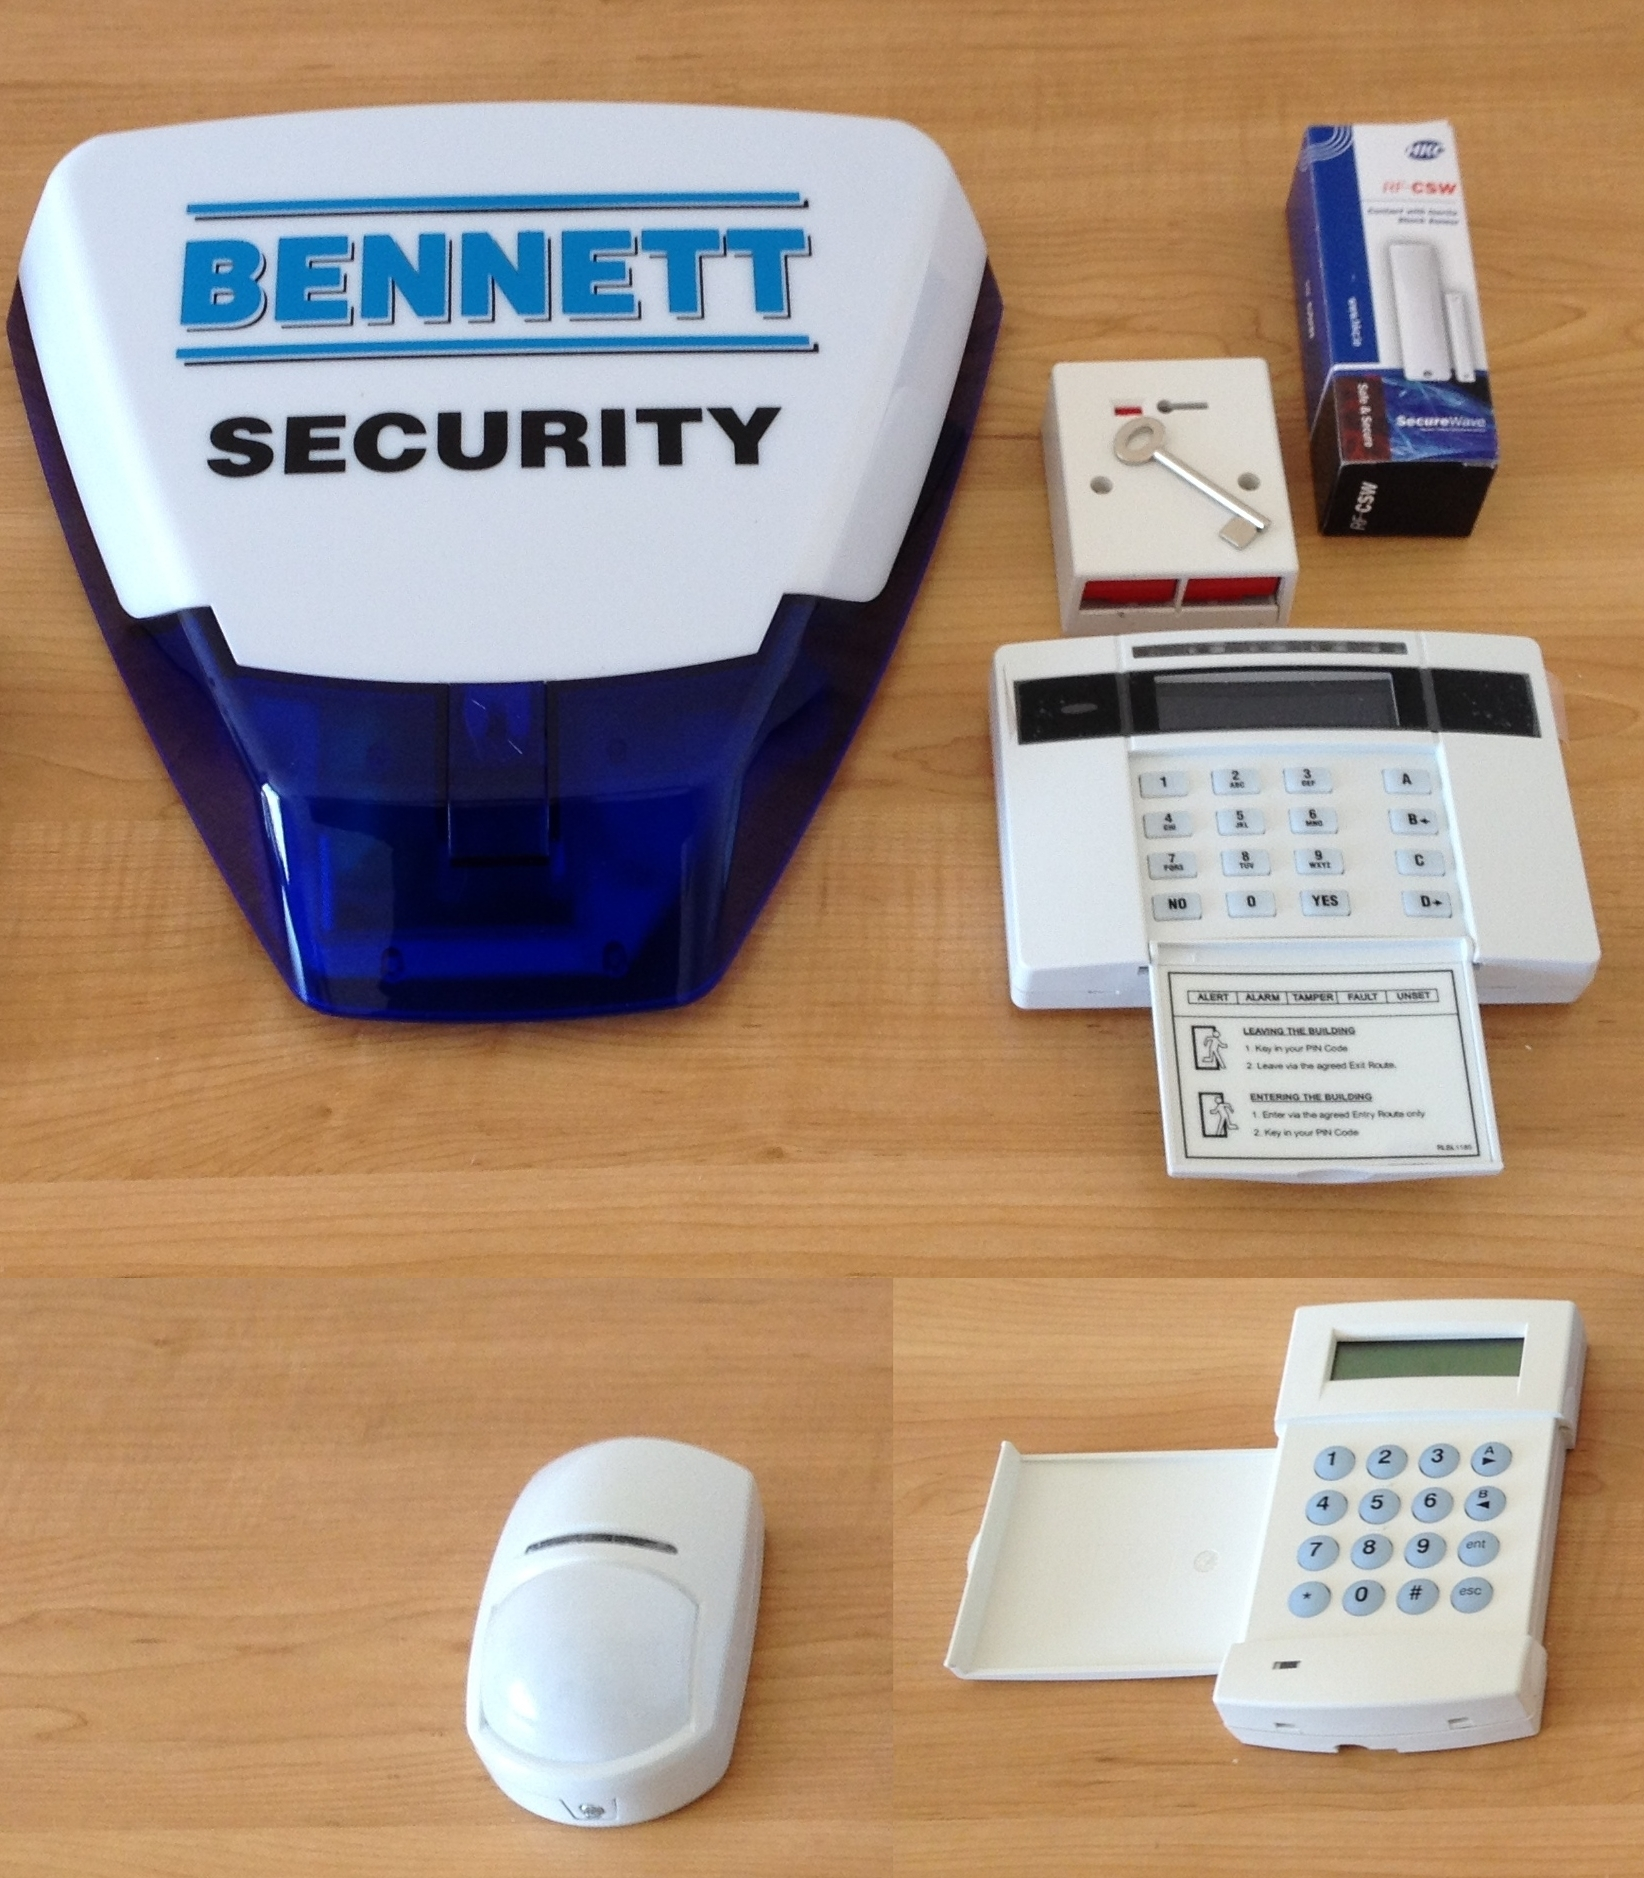 Intruder alarm equipment